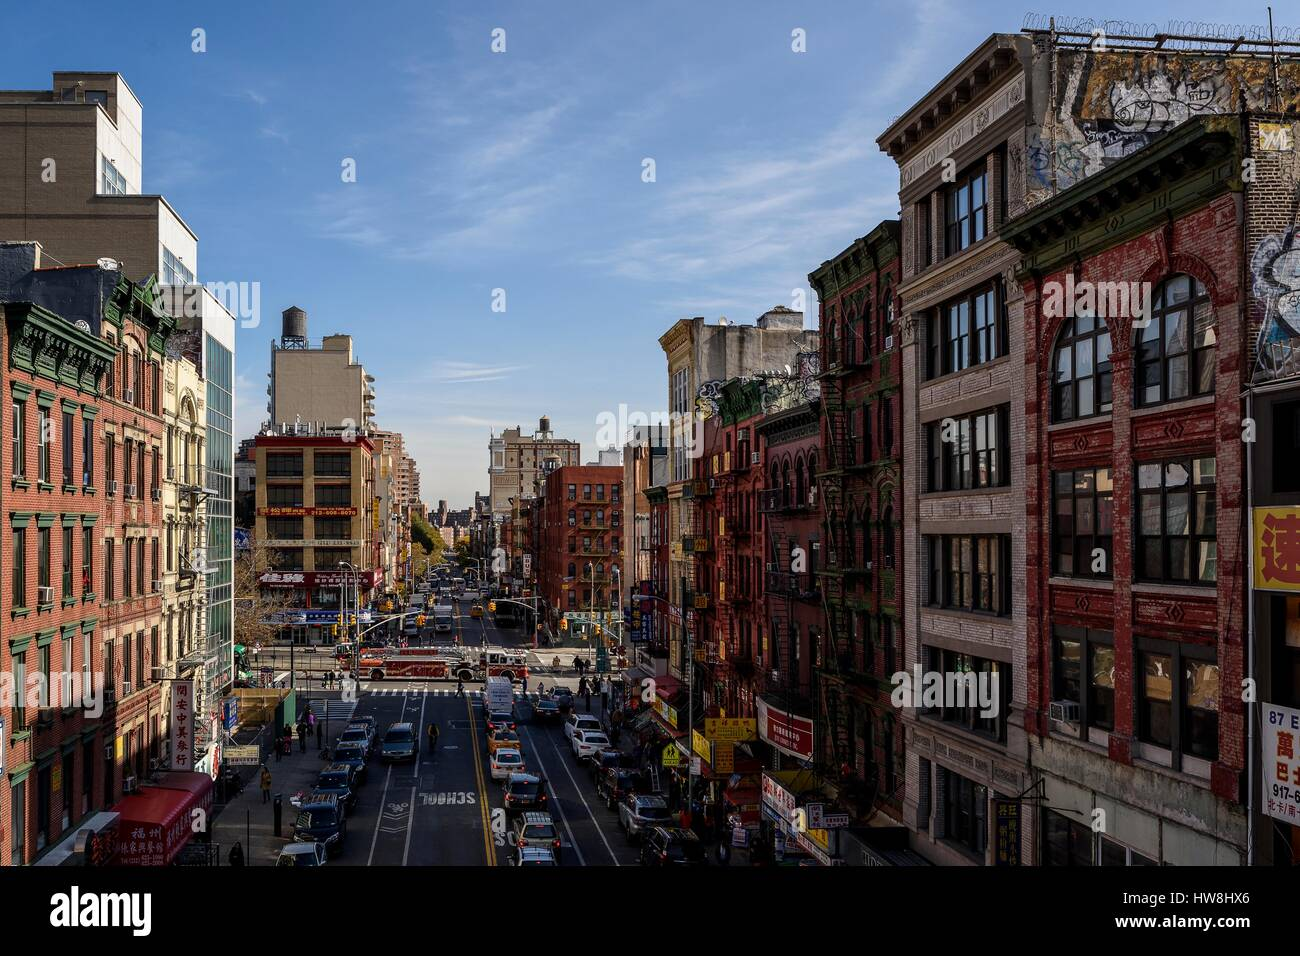 USA, New York, Manhattan, Chinatown, Typical street view of Chinatown in New York with the FDNY firebrigade , seen - Stock Image